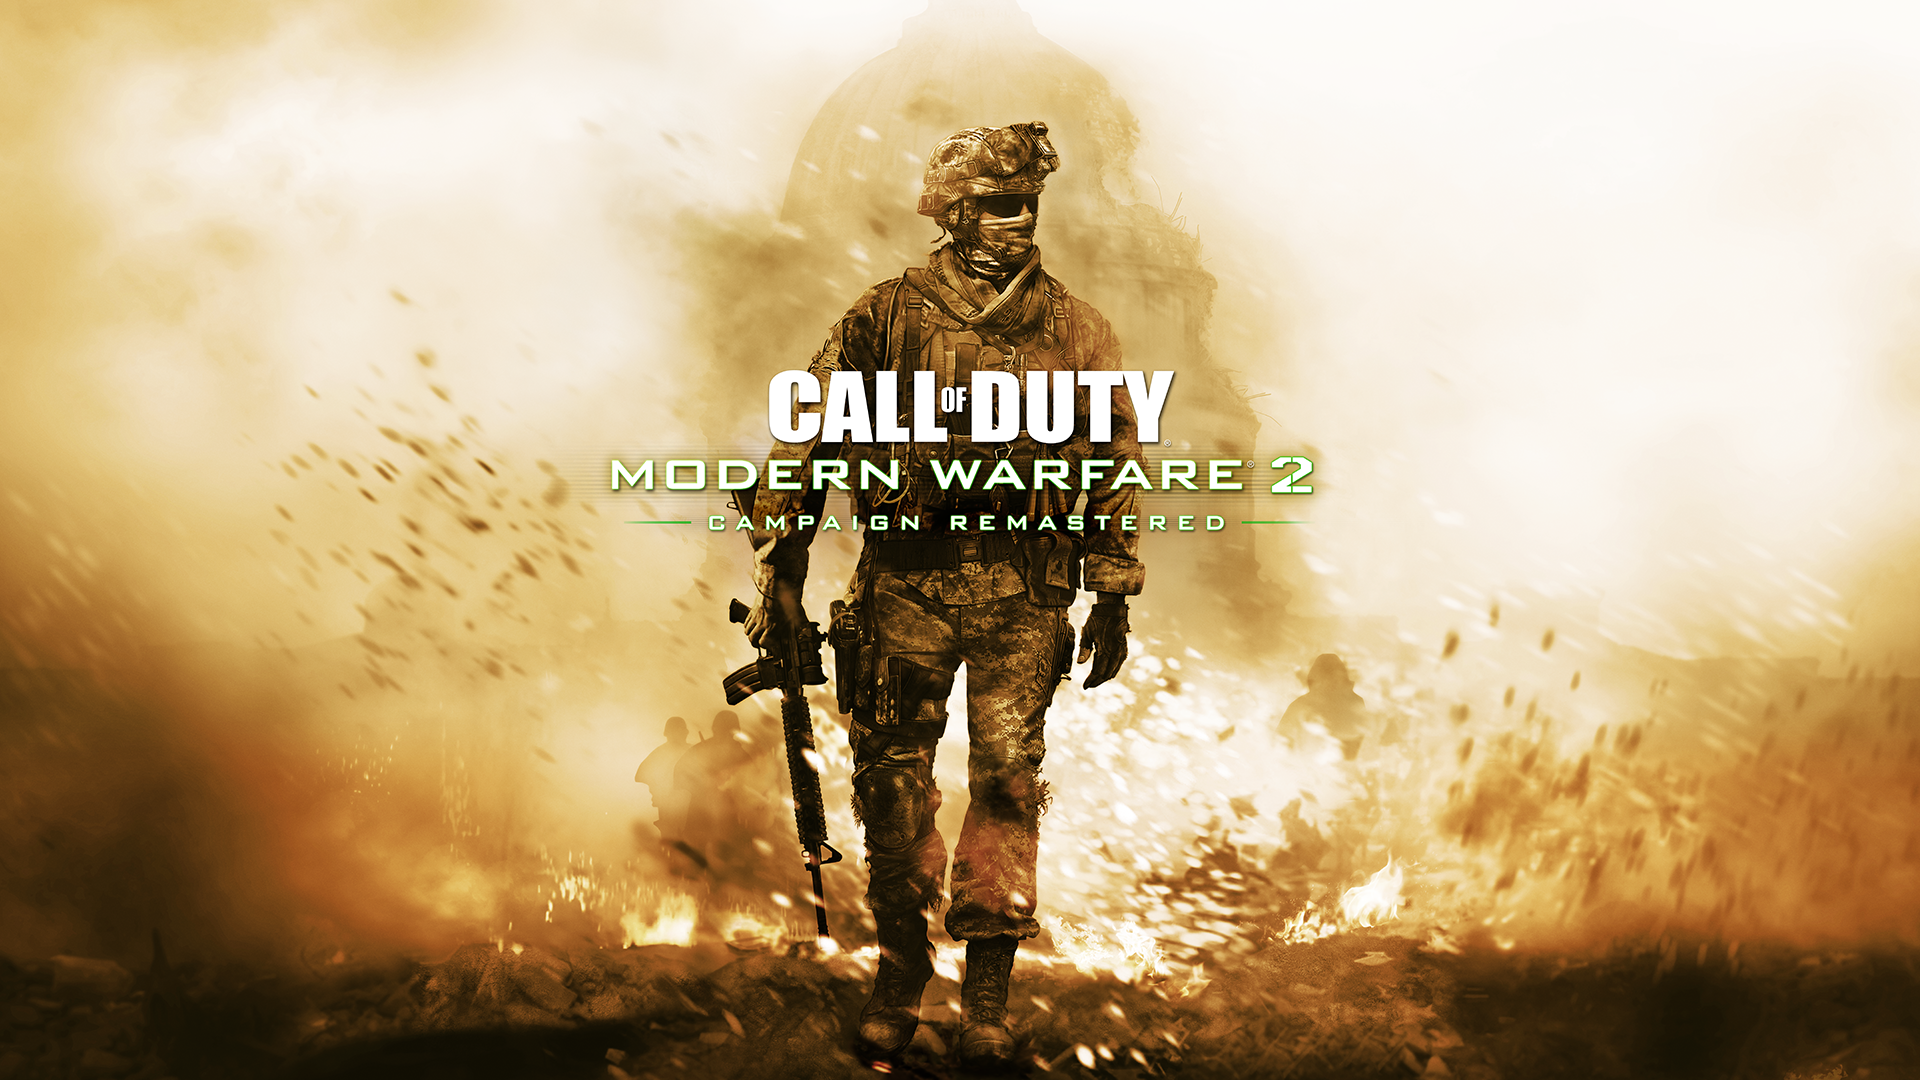 Call Of Duty Modern Warfare 2 Campaign Remastered Review